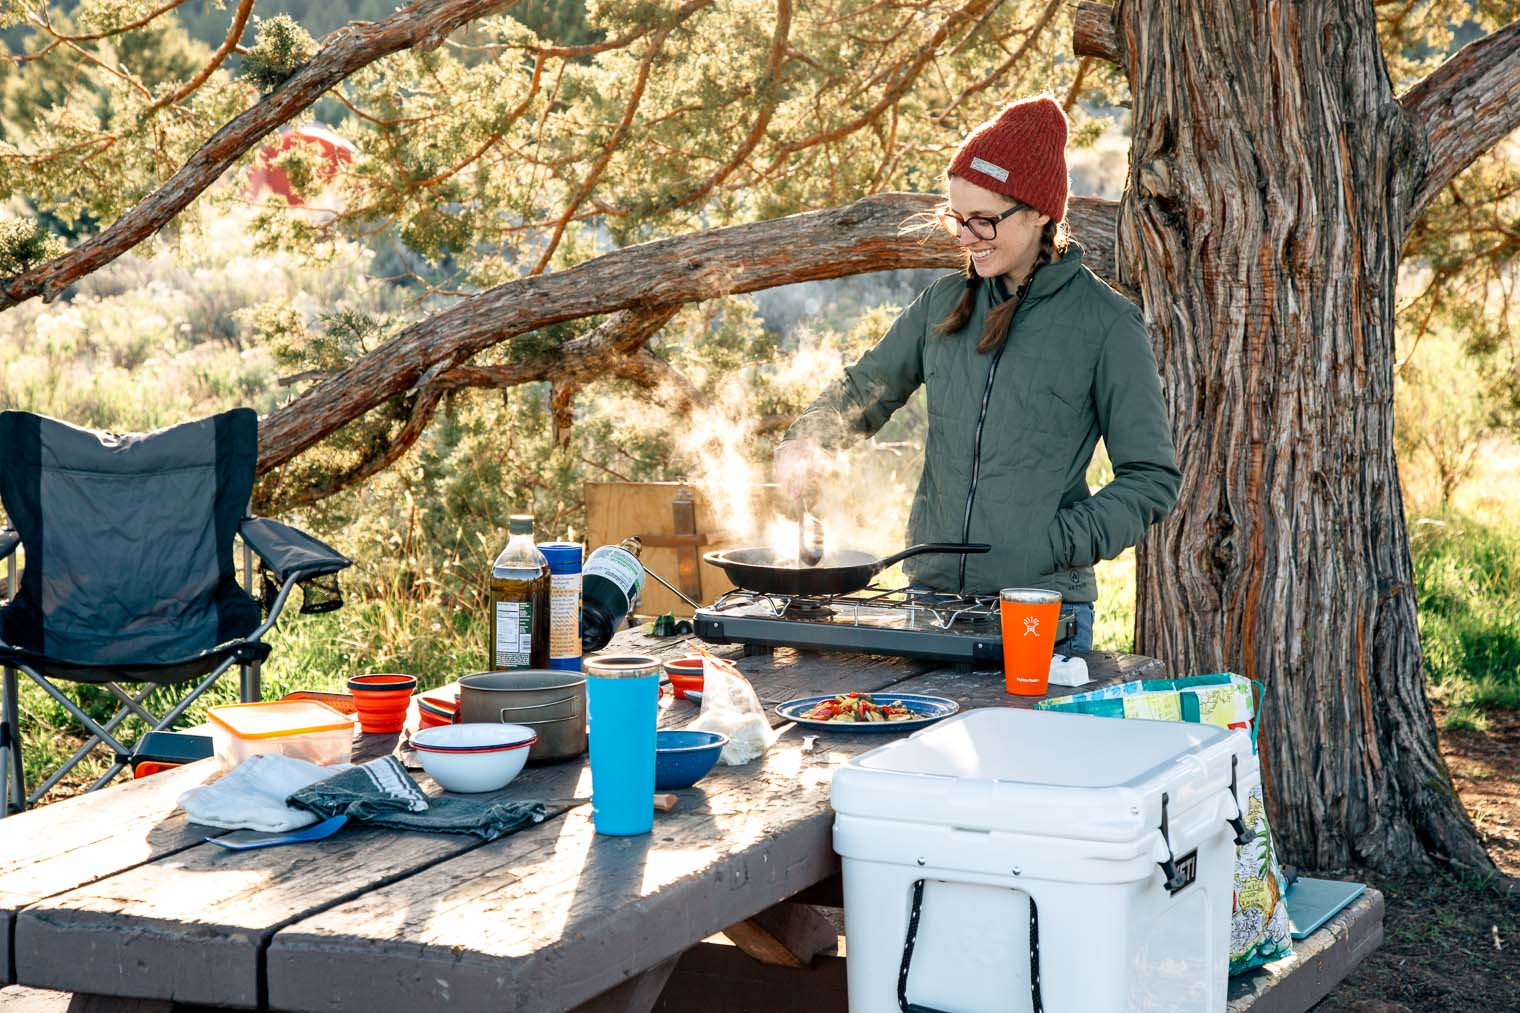 Camping Kitchen Essentials What Gear You Need To Cook While Car This Camp